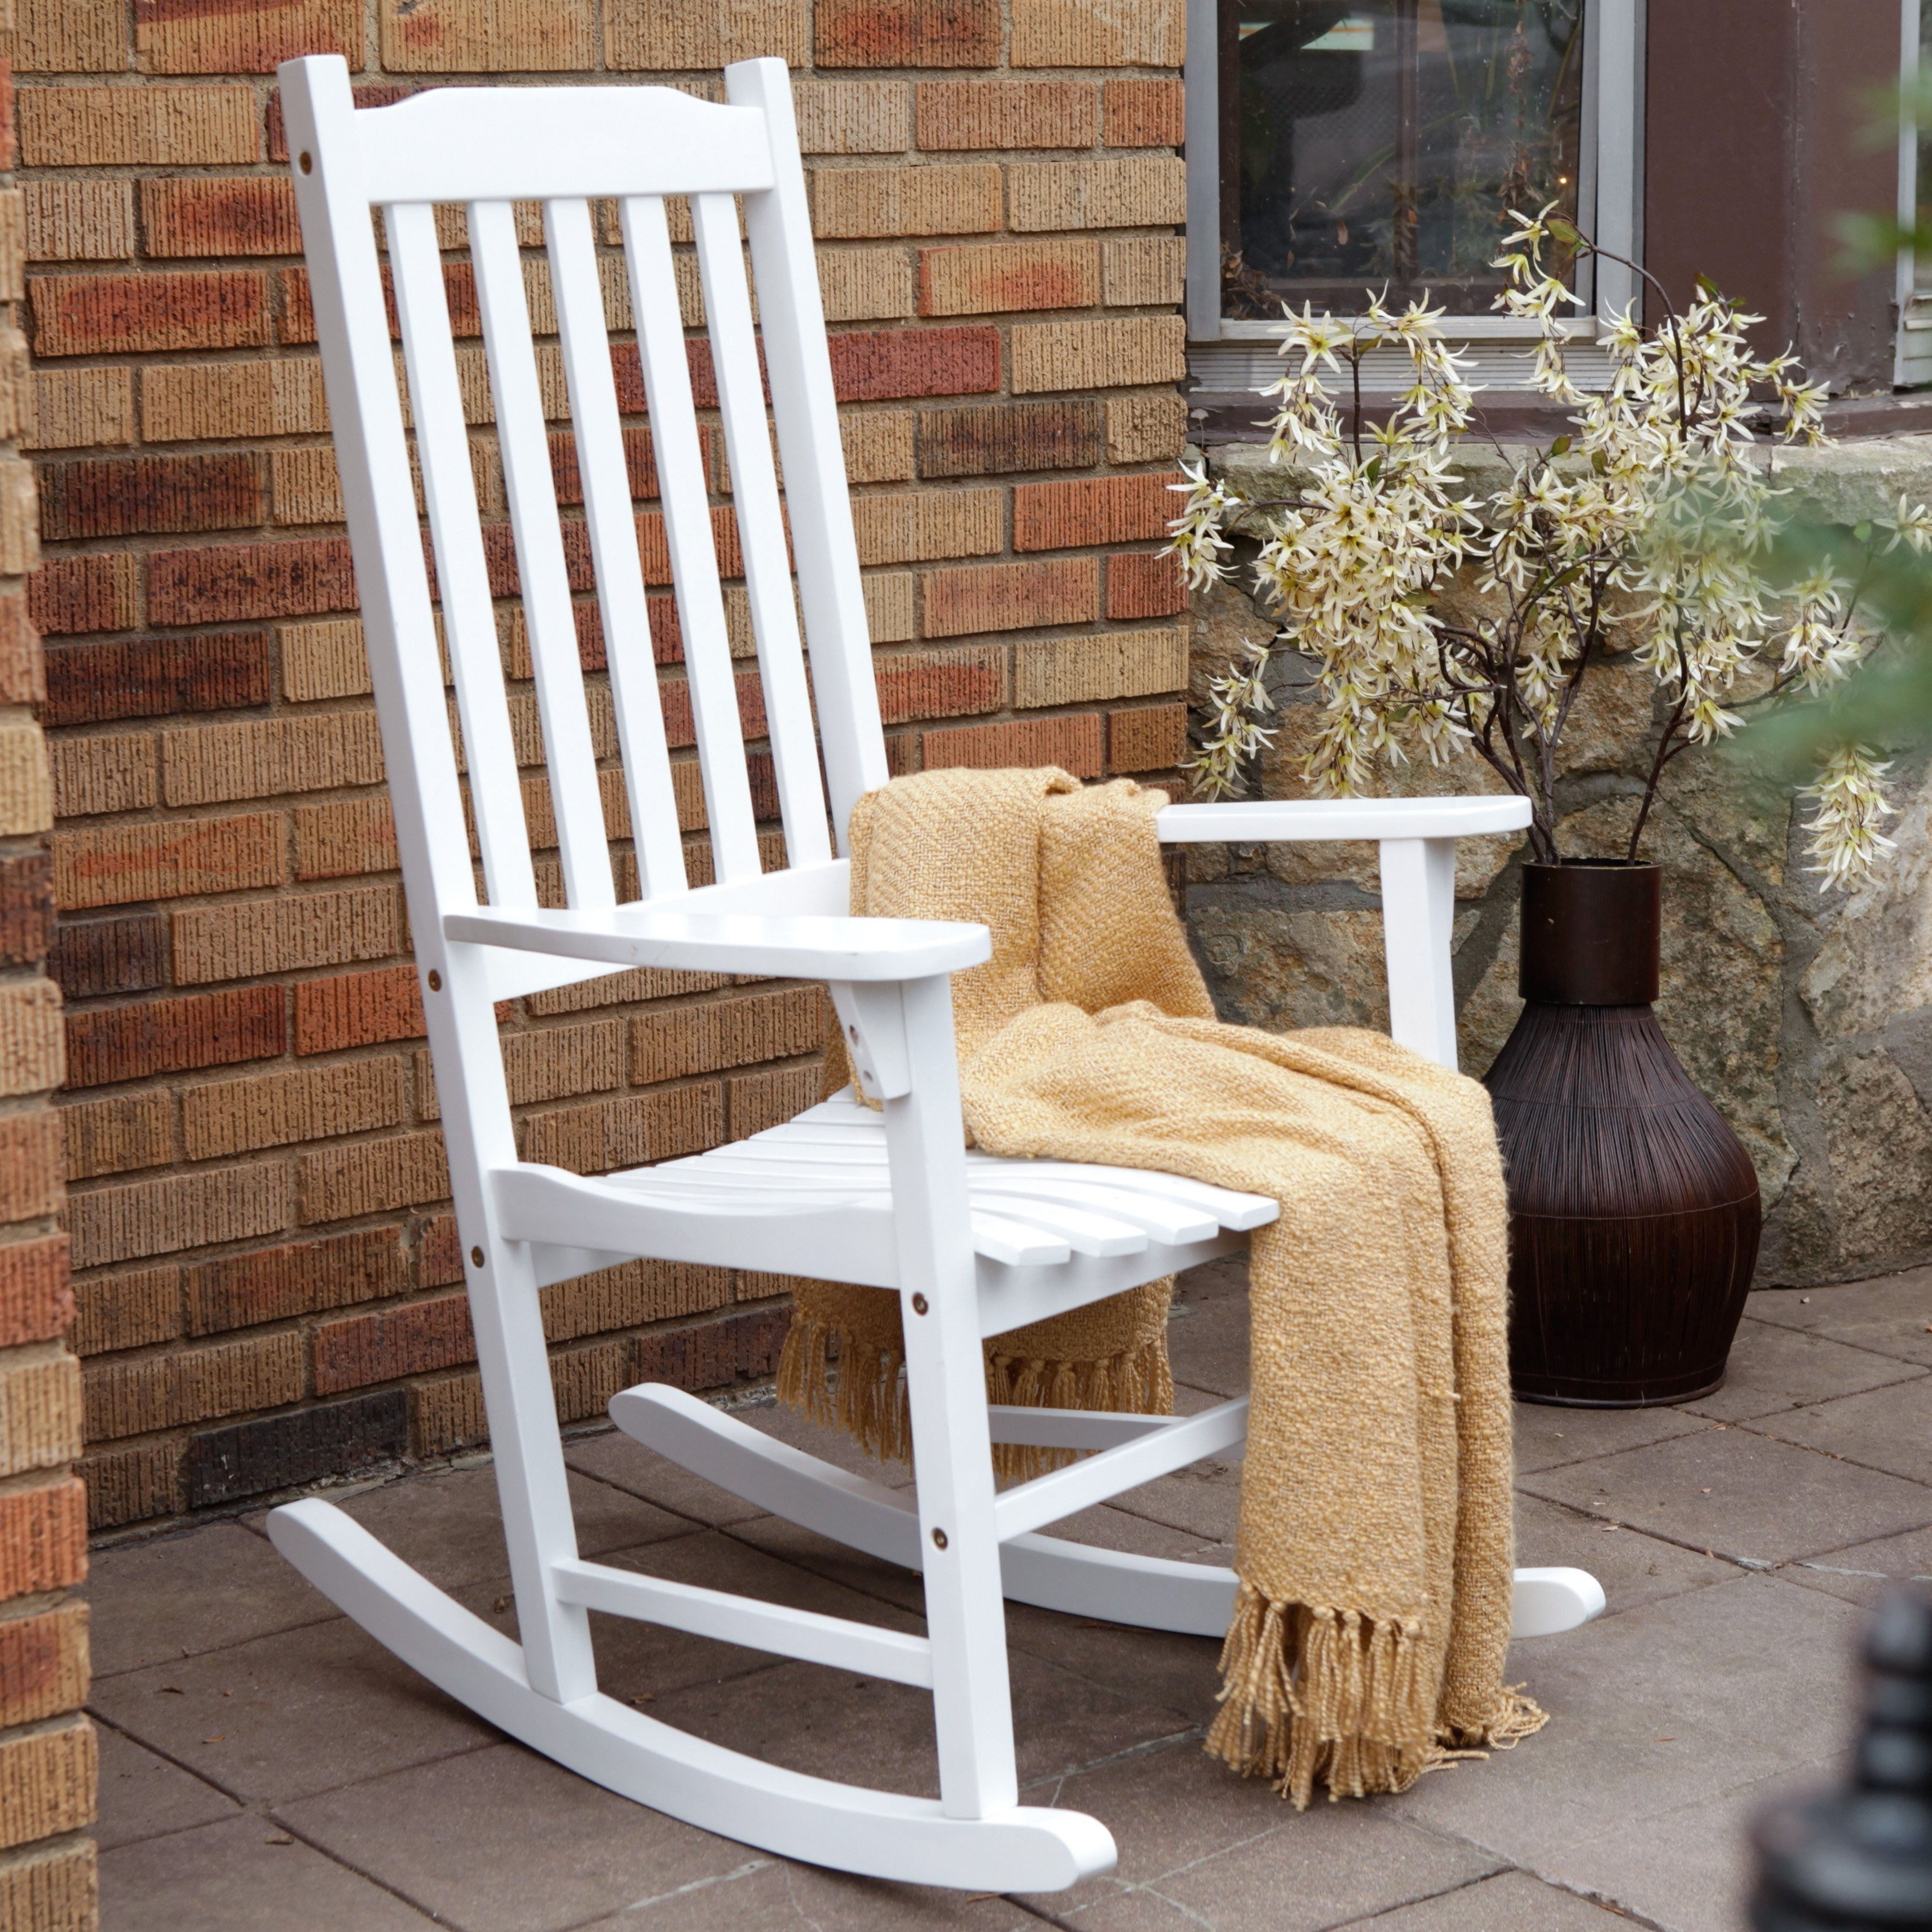 Coral Coast Indooroutdoor Mission Slat Rocking Chair White Pertaining To Widely Used Small Patio Rocking Chairs (View 2 of 20)